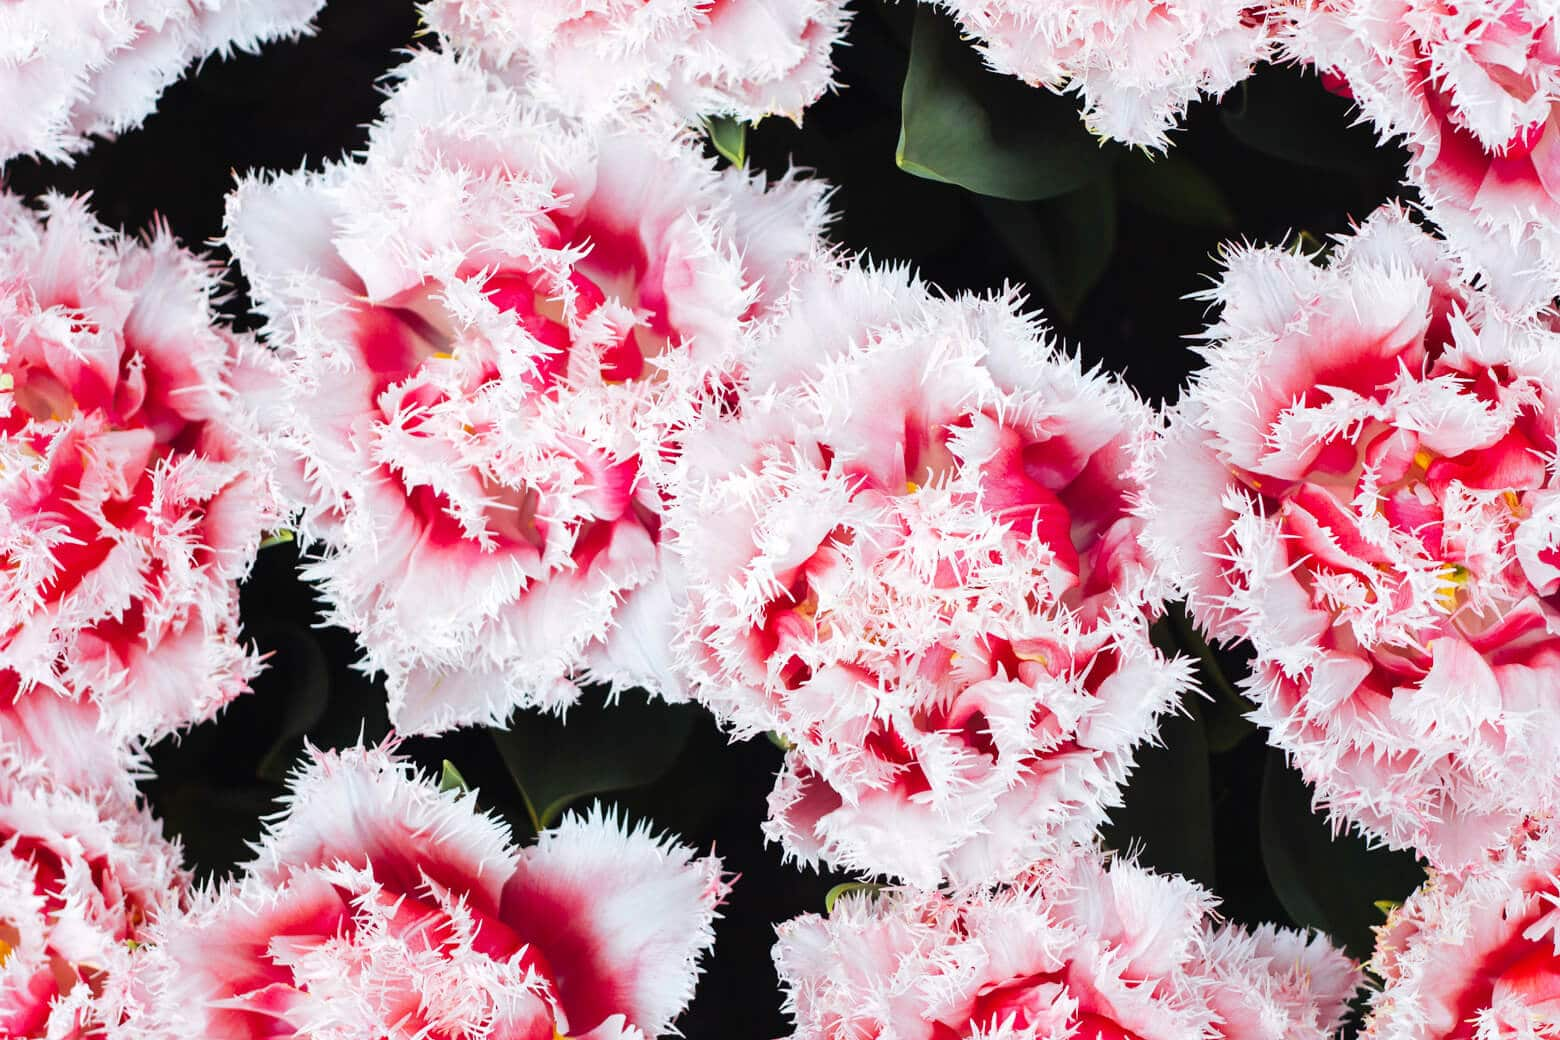 Feathered Pink & White Tulips